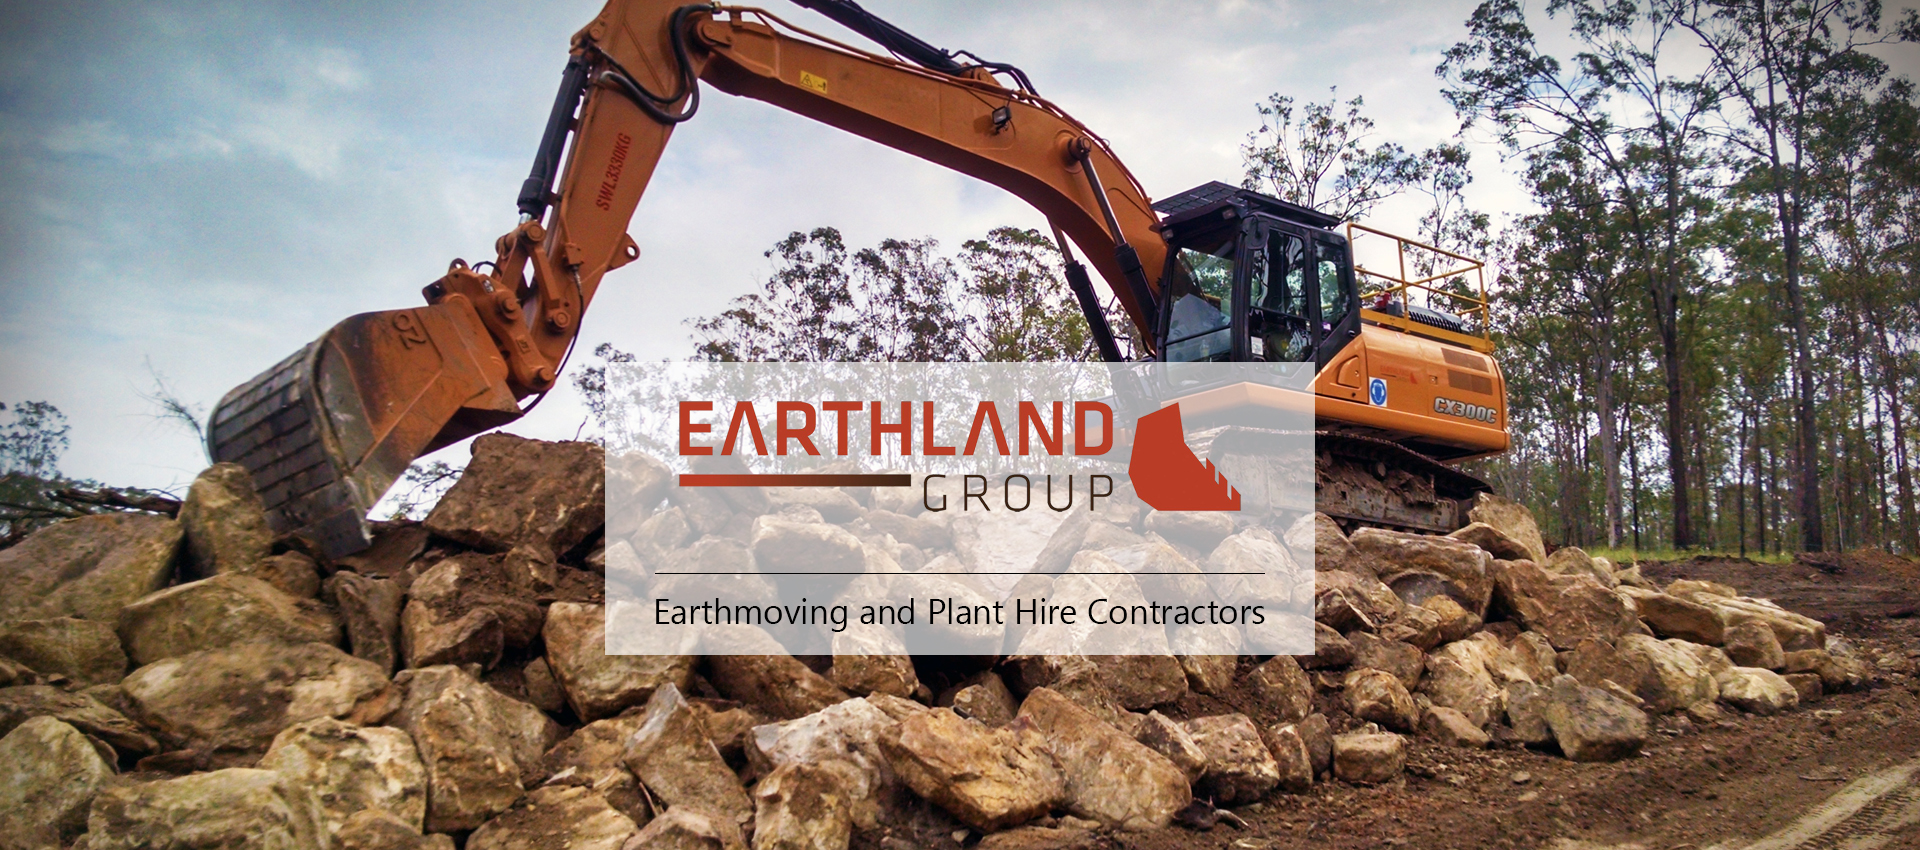 Earthland Group